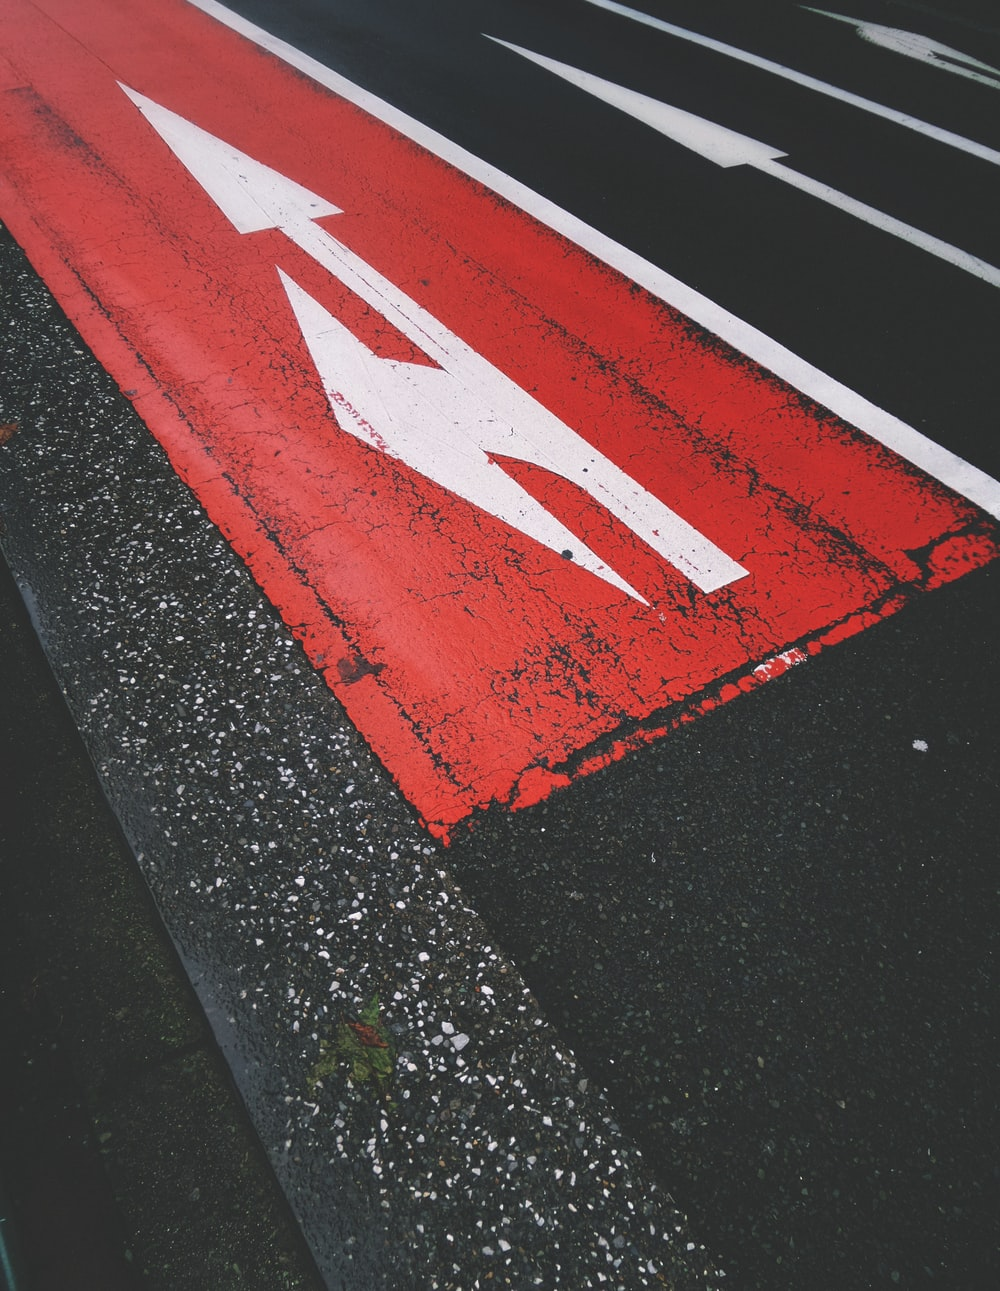 red and white road during daytime